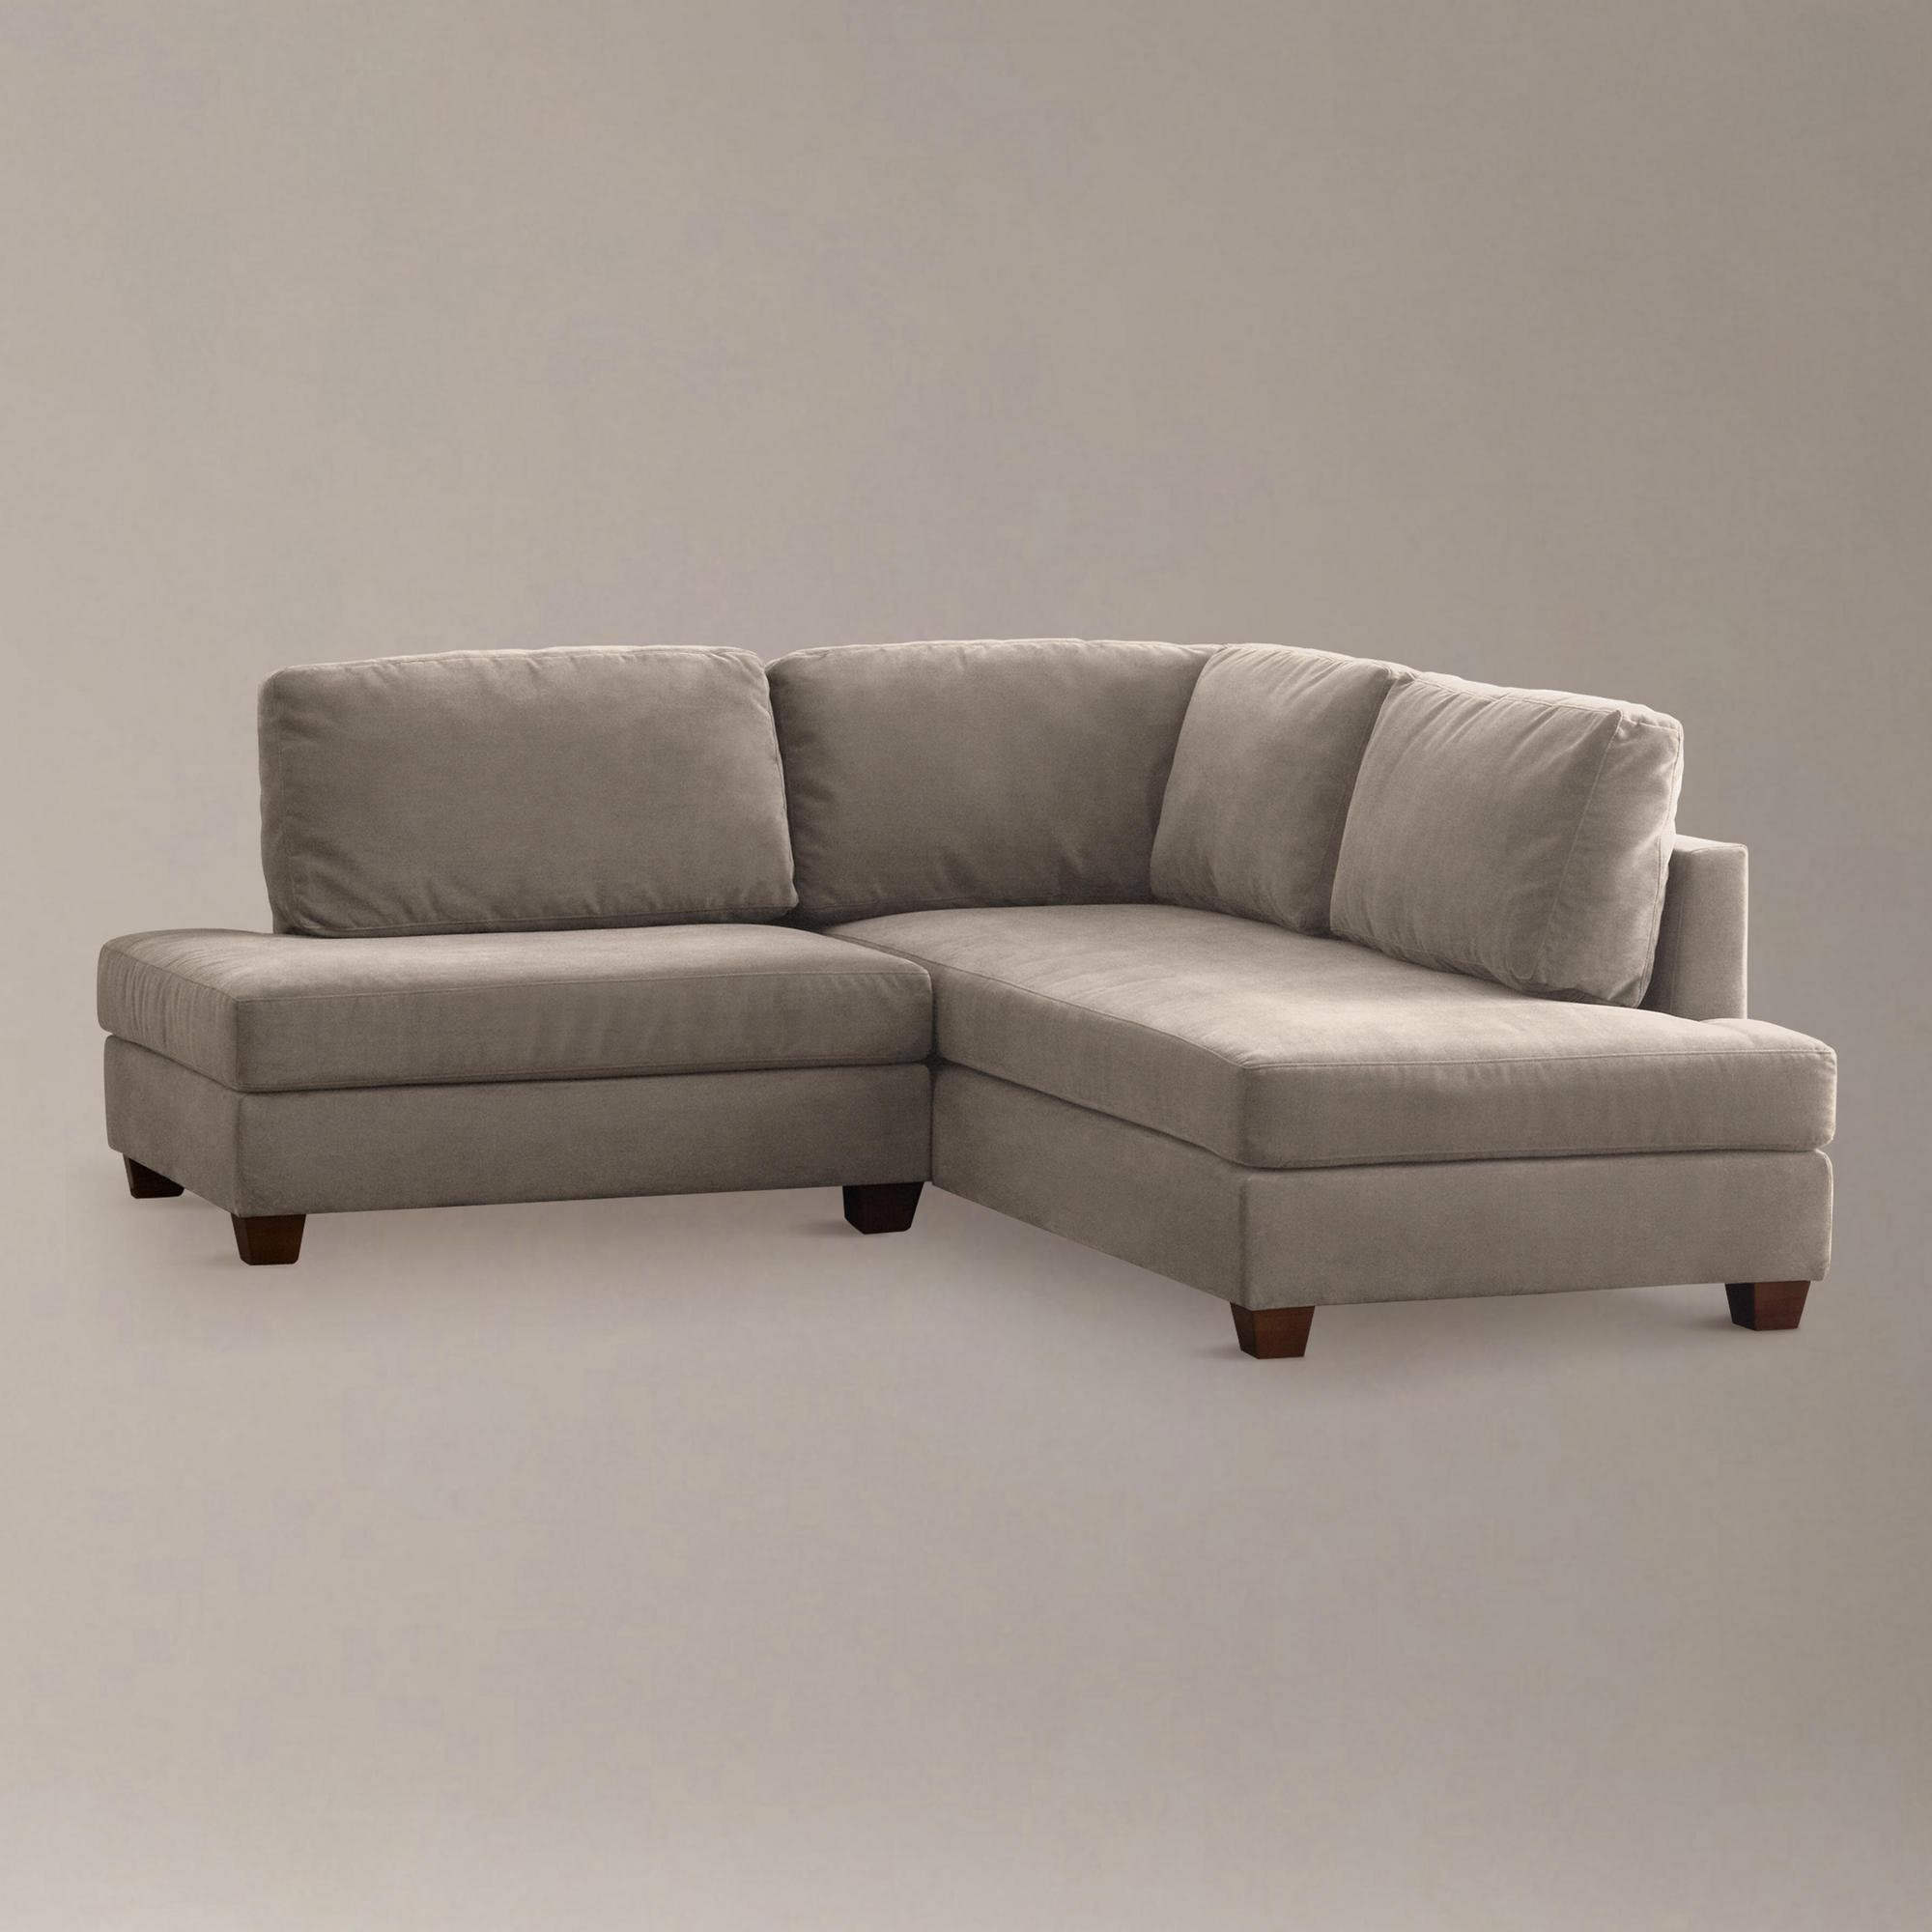 Small Sectional Sofa With Chaise | Tehranmix Decoration With Apartment Sectional With Chaise (Image 12 of 15)